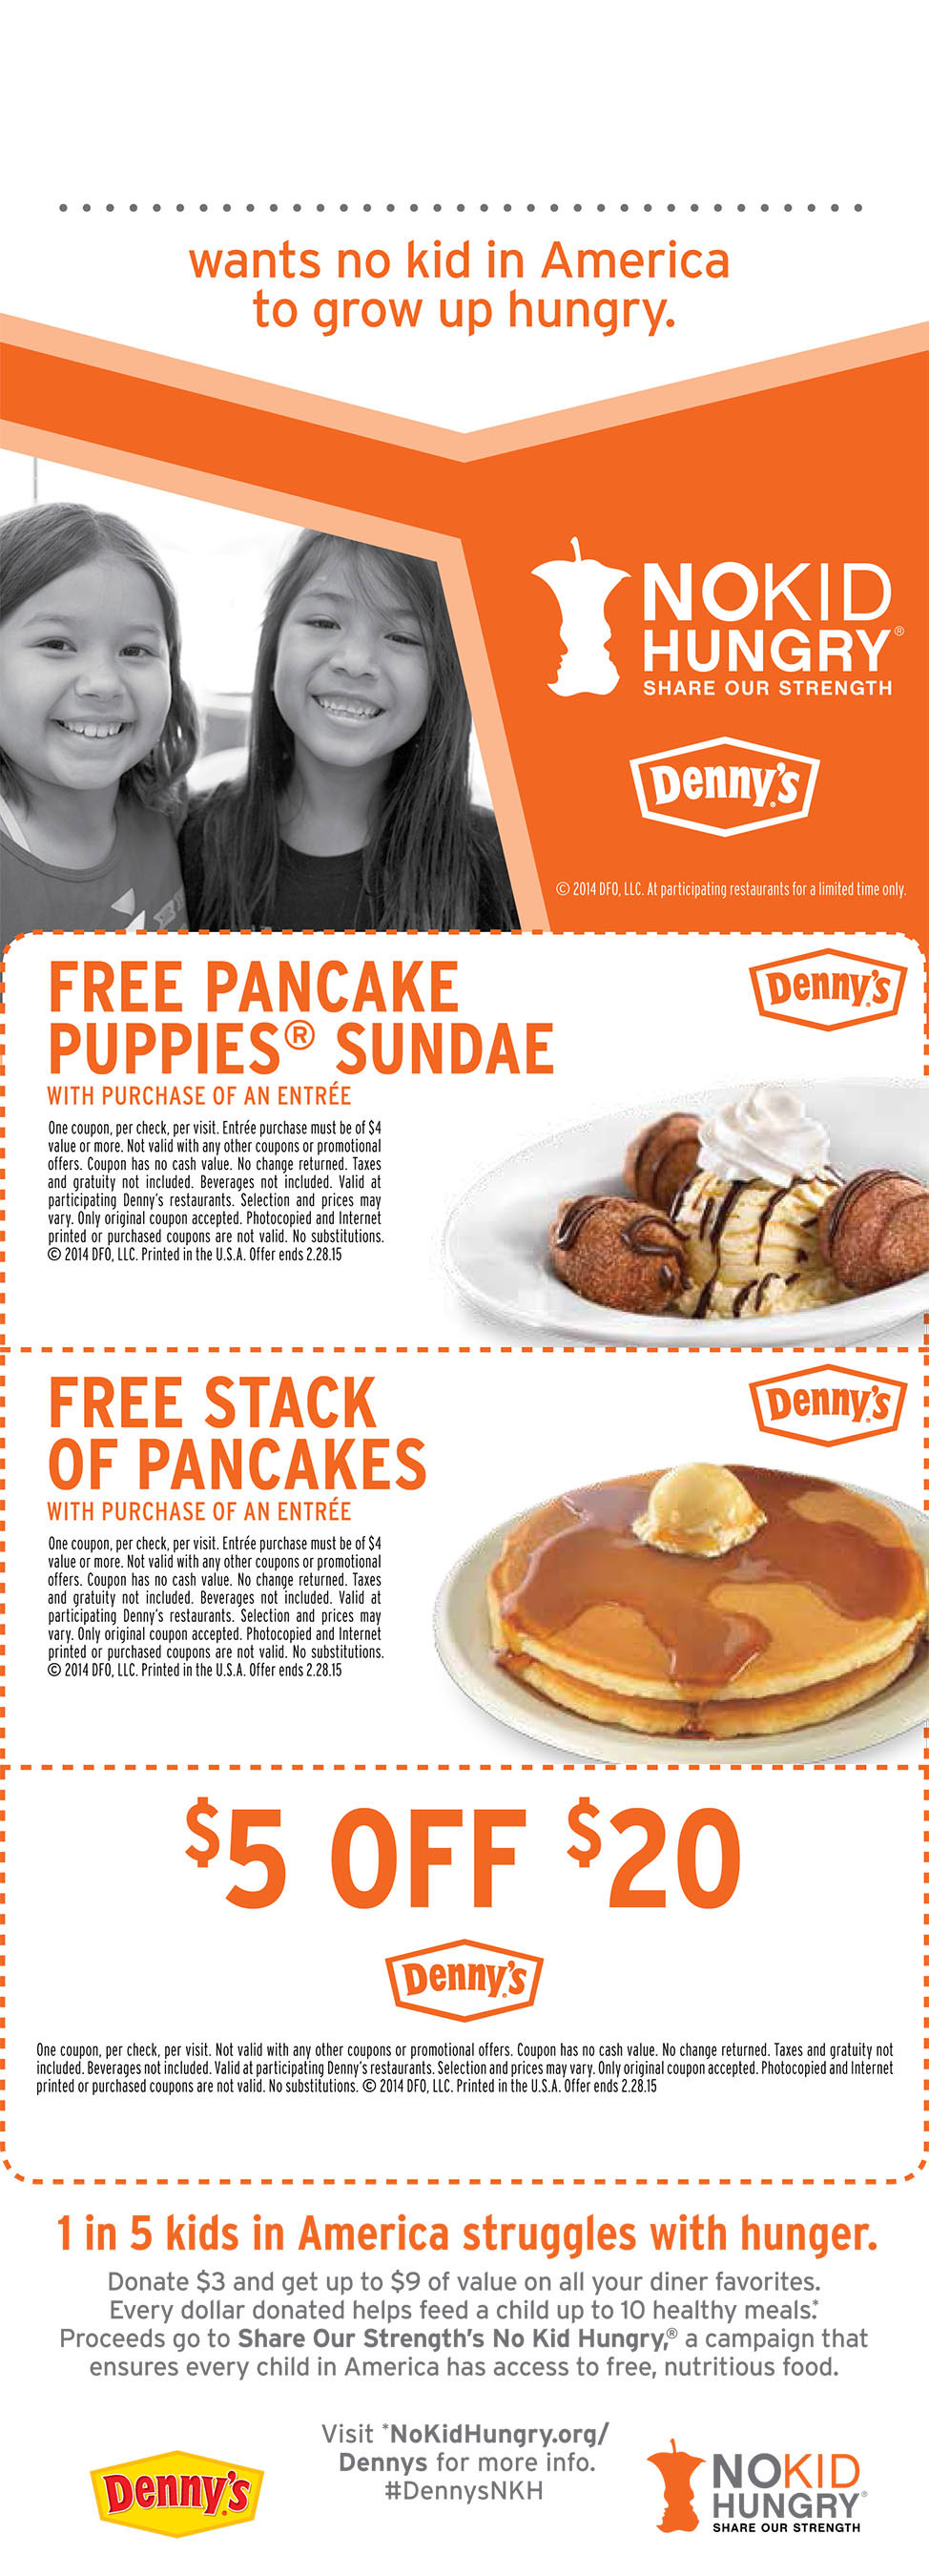 For a $3 donation, guests will receive $9 worth of coupons redeemable at participating Denny's restaurants. Every dollar donated helps feed a child up to 10 healthy meals.